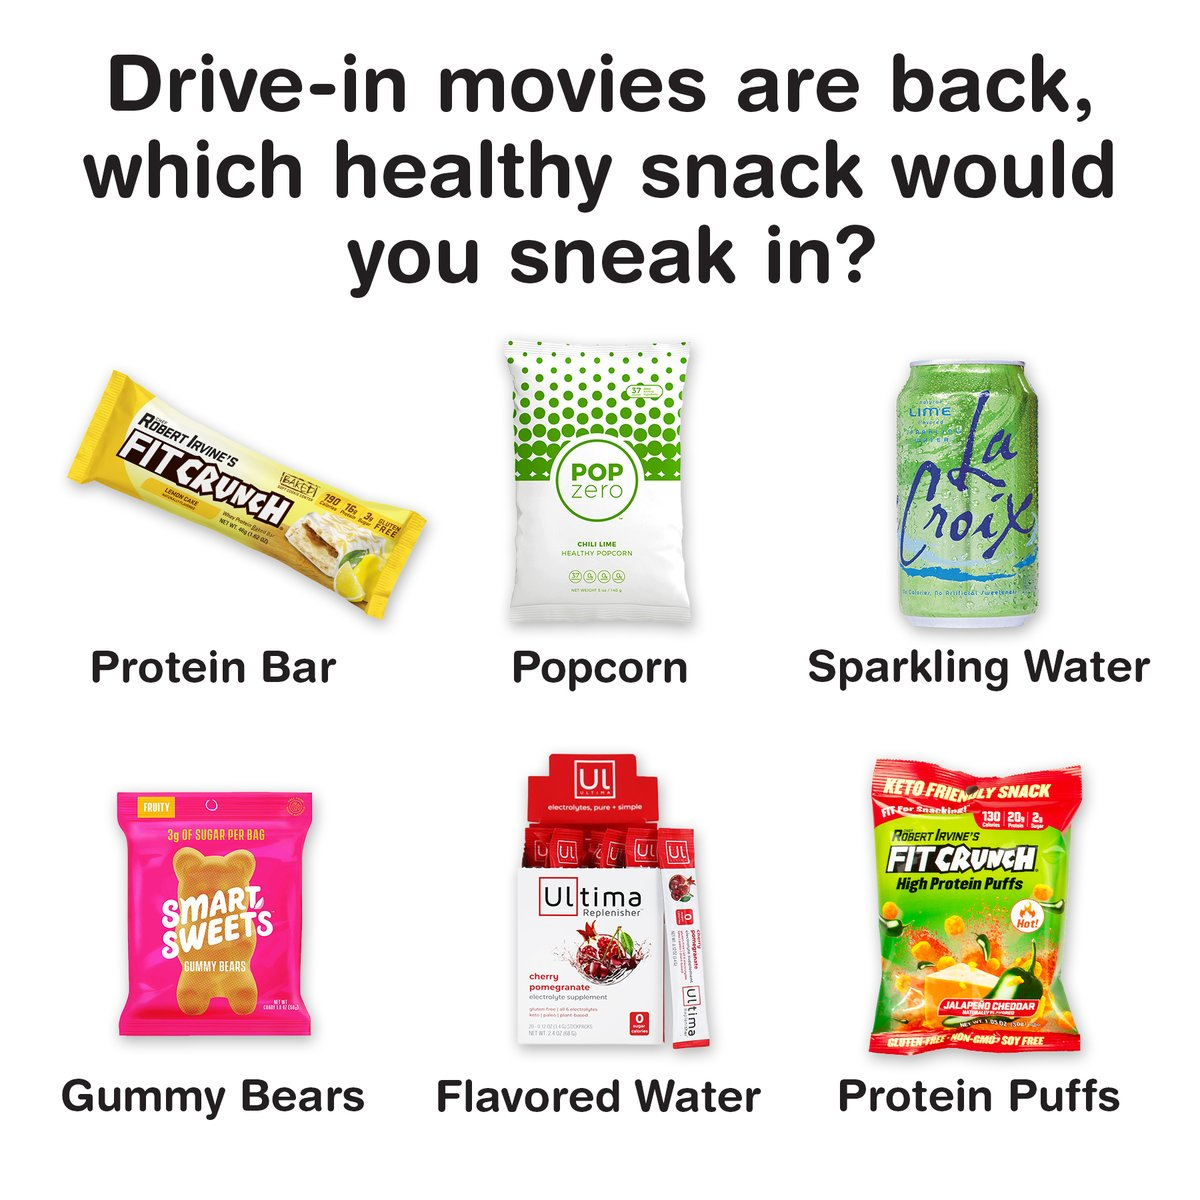 Drive-in movies mean more room to pack your snacks . . #fitcrunch #driveinmovie #trends #fitness #movies #family #friends #snacks #fitforsnacking #fitcrunchbars #snacktime #moviesnacks #togetherwecan #quarantinesummerpic.twitter.com/h9cq02SsxH